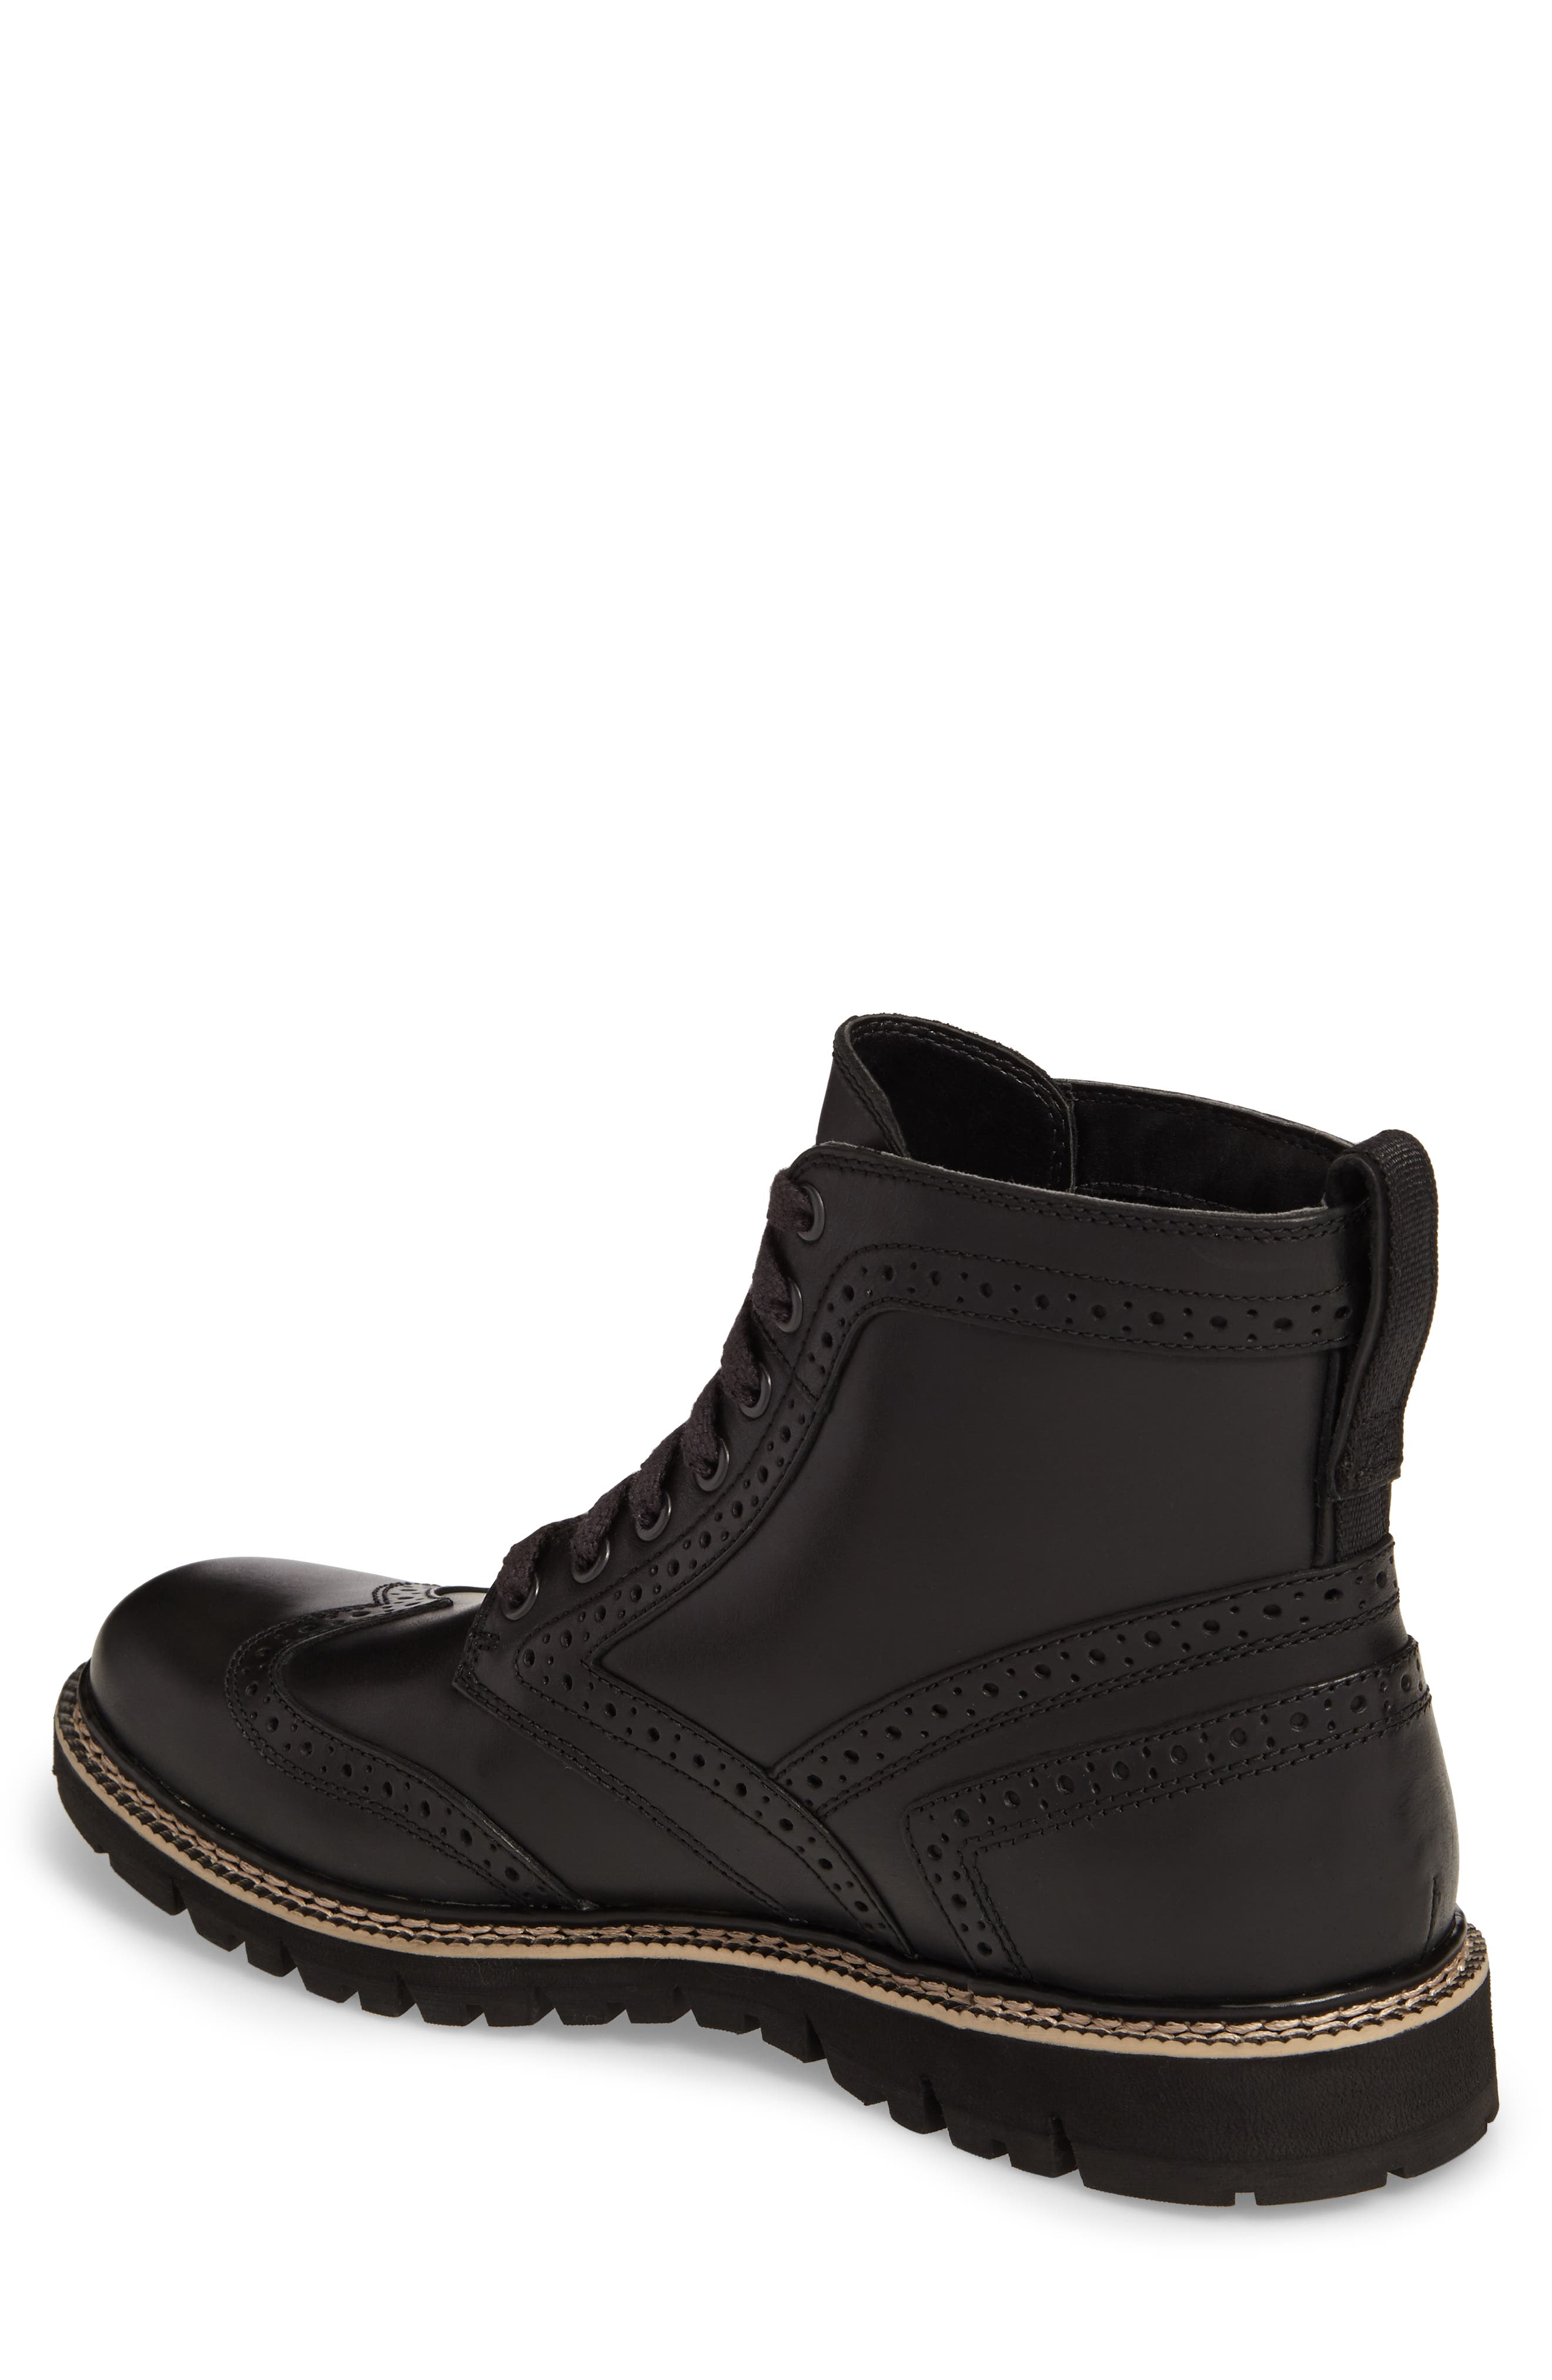 Britton Hill Wingtip Boot,                             Alternate thumbnail 3, color,